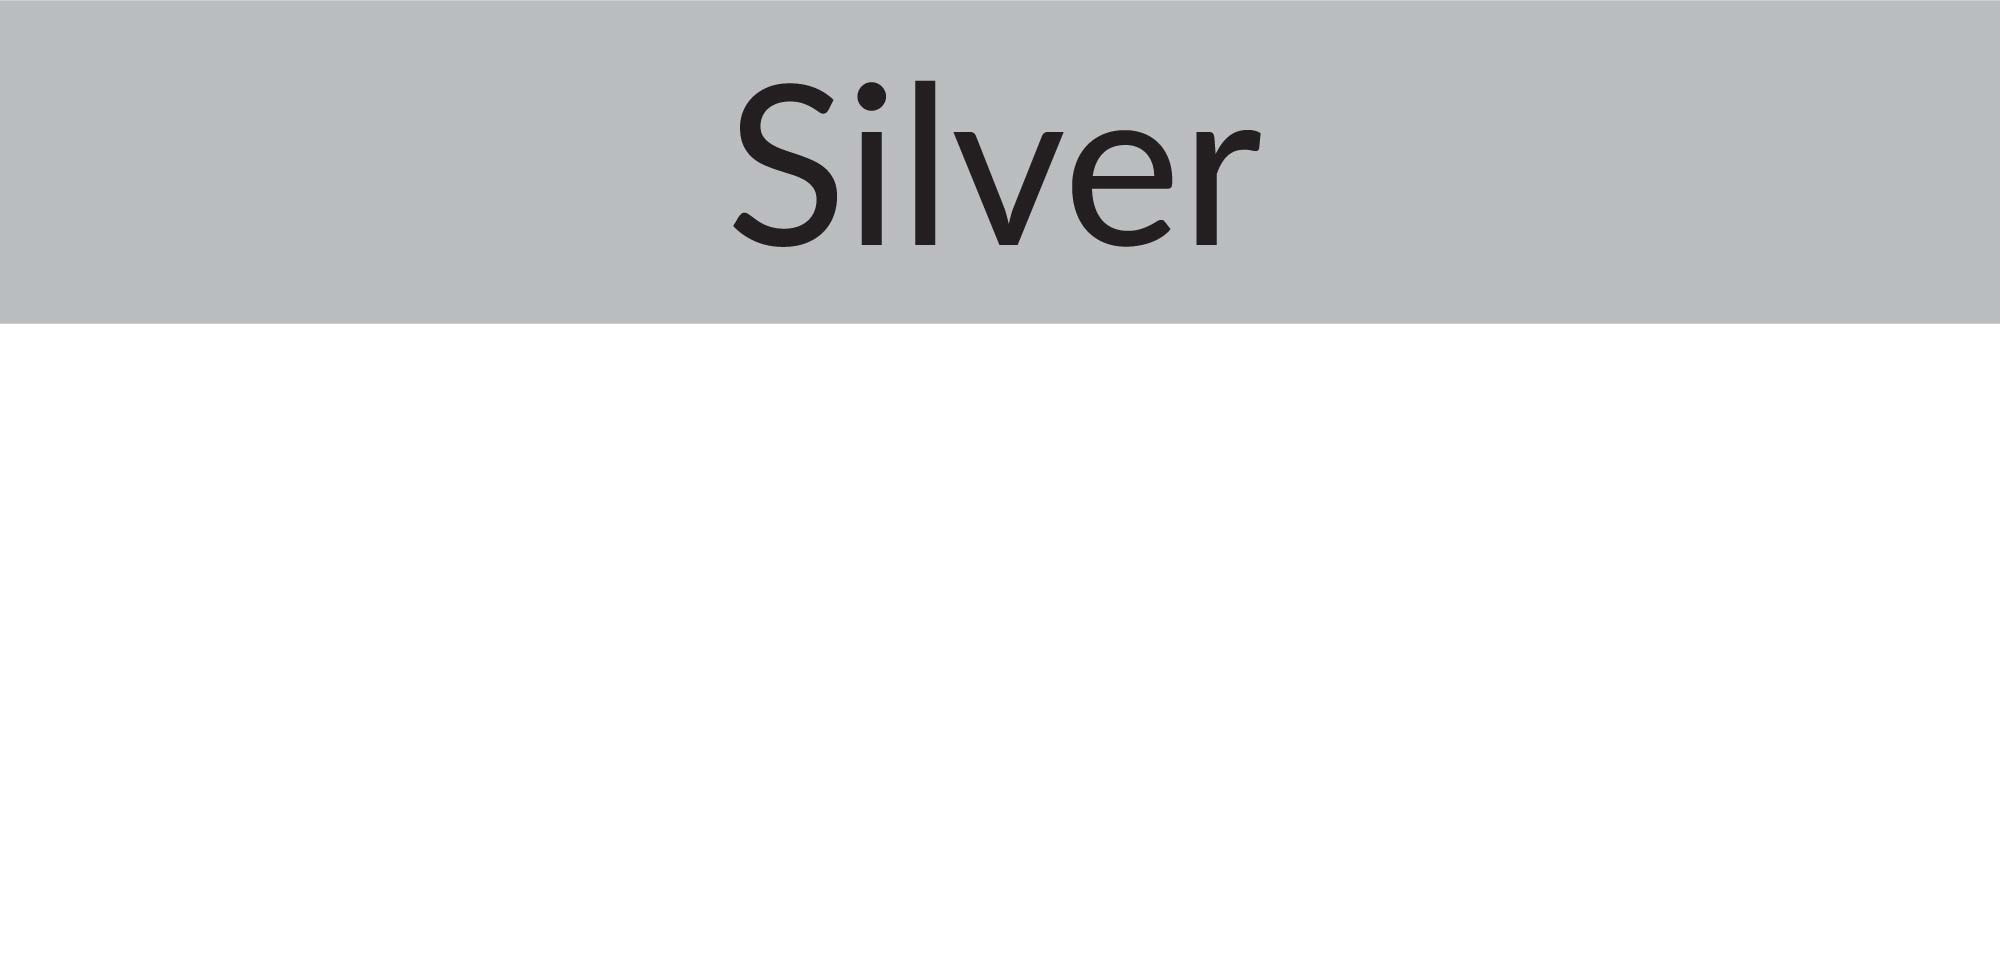 re3d-website-gb-tab-2019-materials-silver